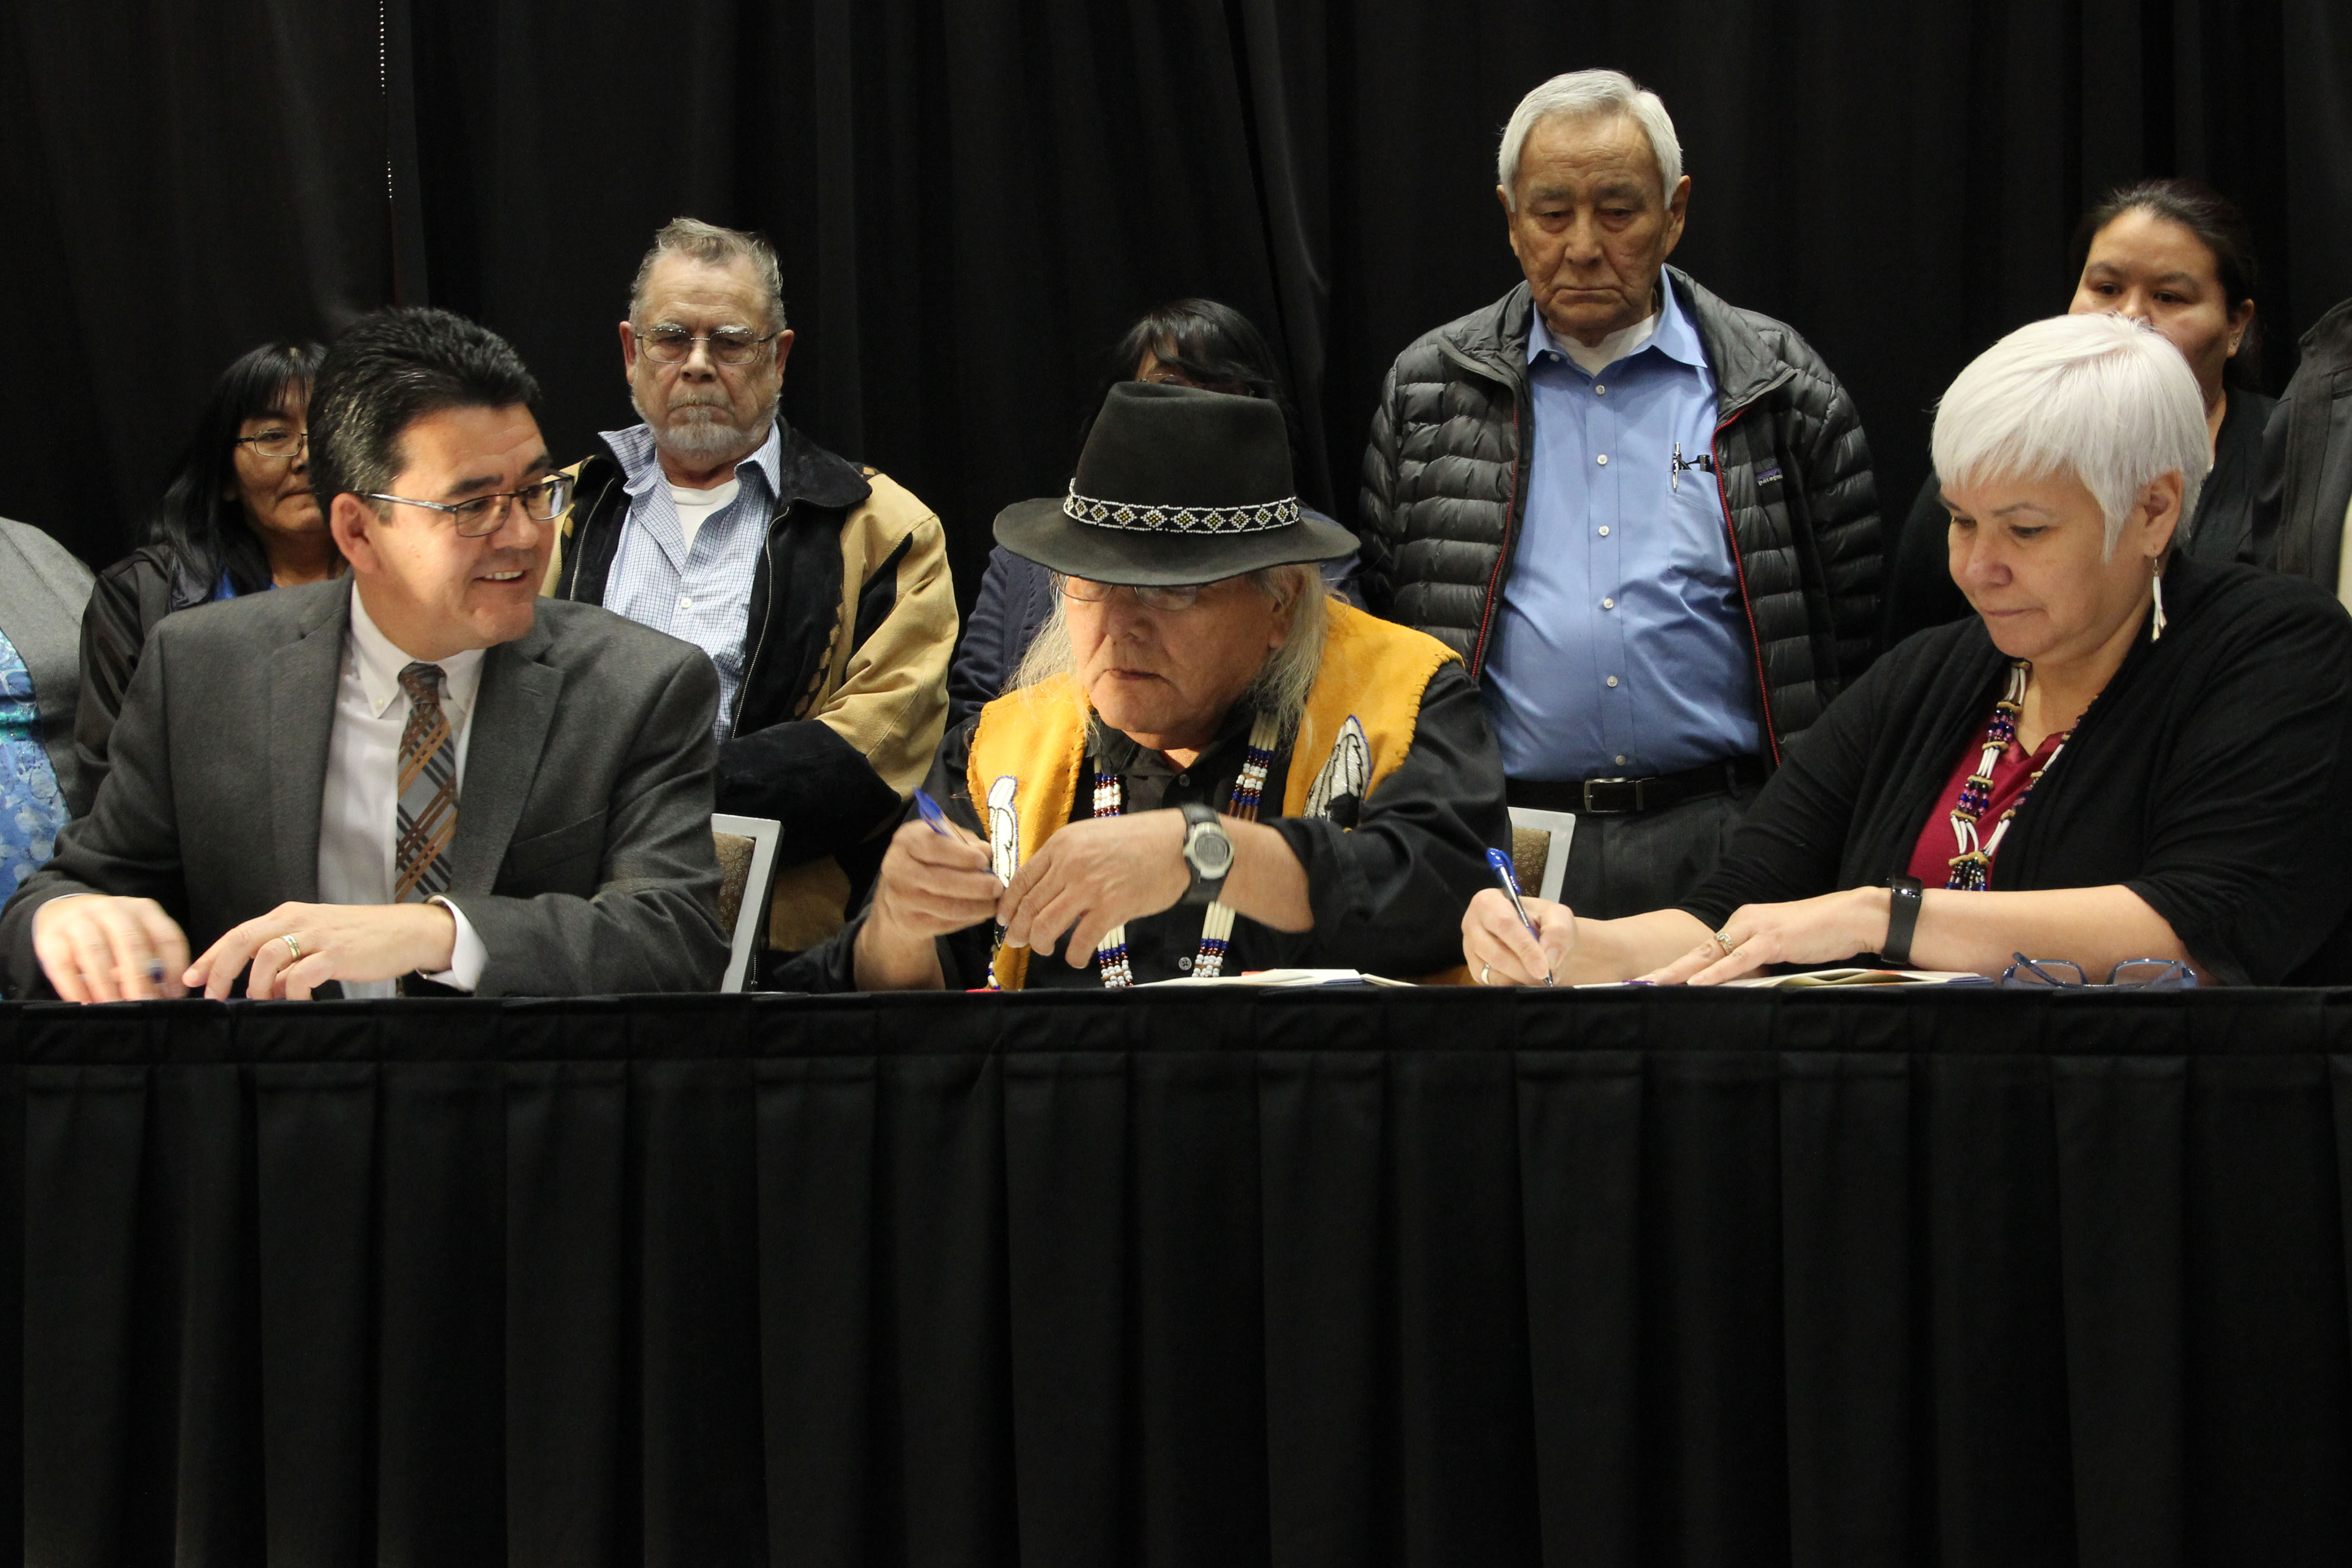 Deouty Interior Secretary Michael L. Connor joins Christopher Gene (center) and Karen Linnell of the Ahtna Intertribal Resource Commission to sign an agreement giving Alaska Native tribes in the Ahtna region more say over subsistence resources. (Photo by Rachel Waldholz/Alaska's Energy Desk)